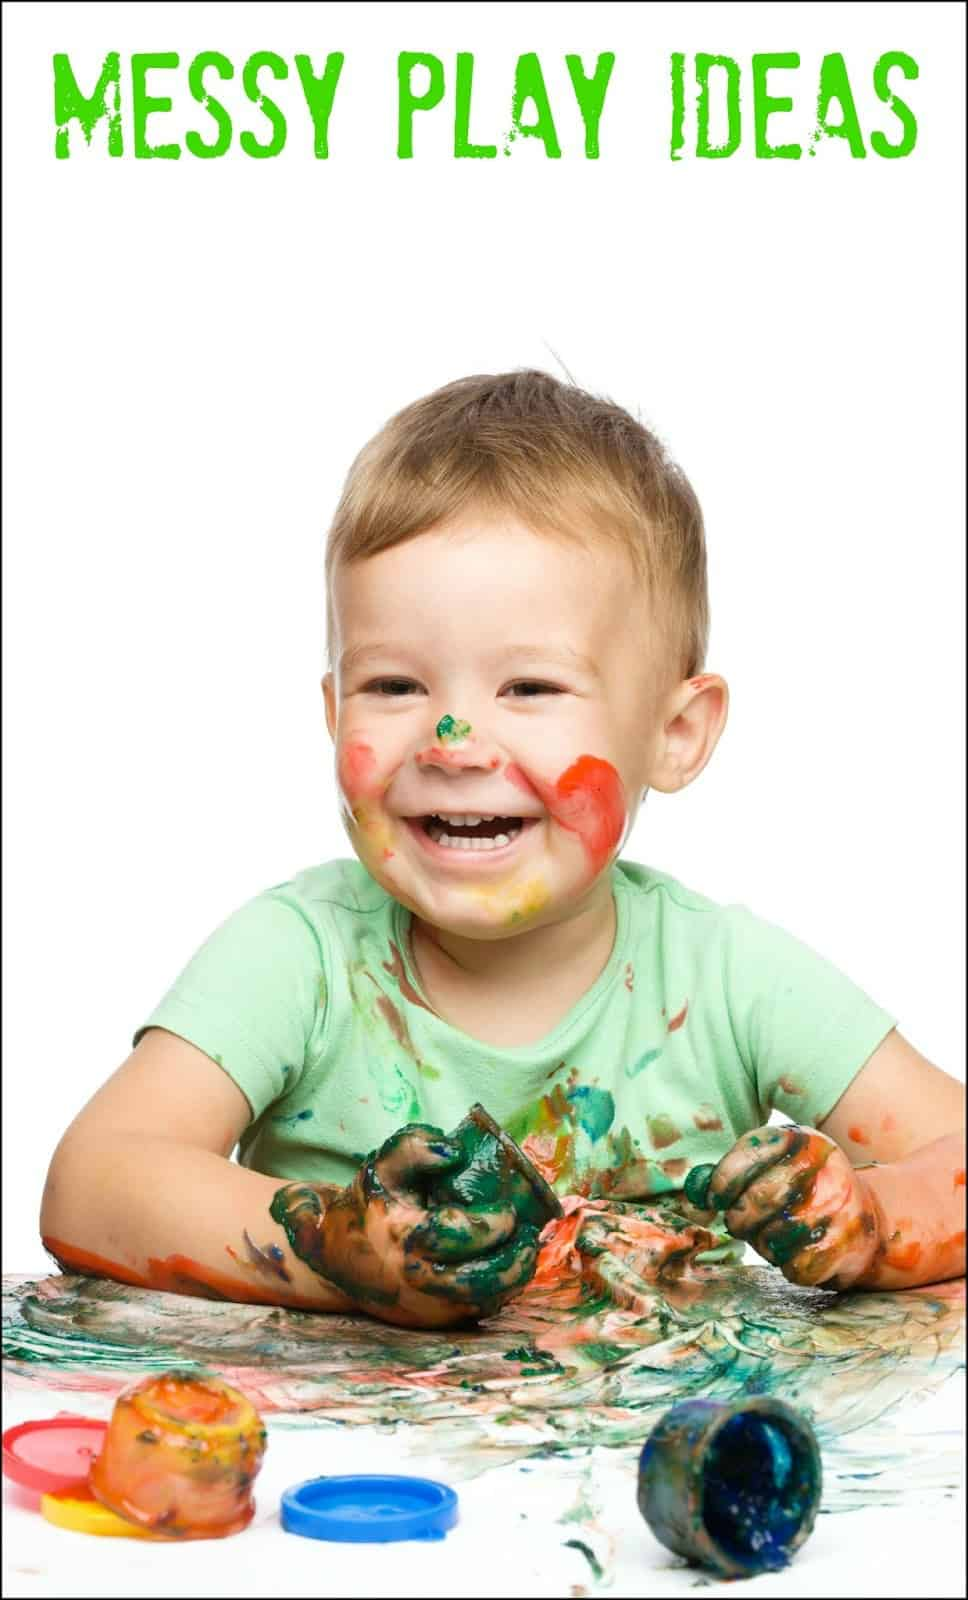 These are some of our favorite messy play ideas for kids. Find out why messy play is developmentally important and how to have some messy fun!